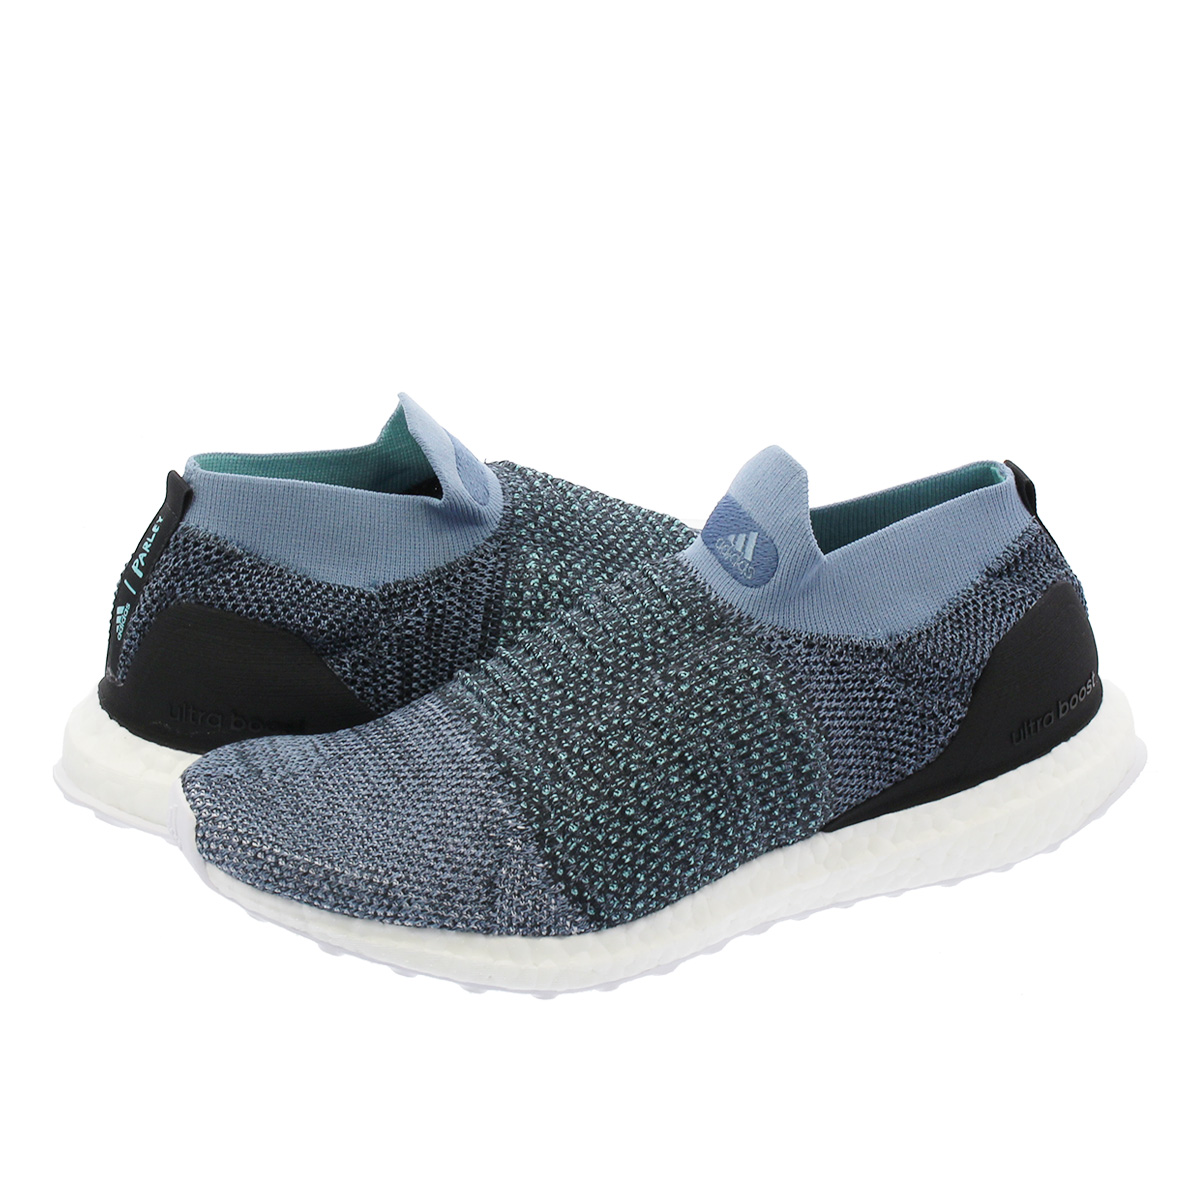 new products 9c091 abca8 adidas UltraBOOST LACELESS PARLEY Adidas ultra boost raceless gone lei  GREY/CARBON/BLUE SPLIT cm8271